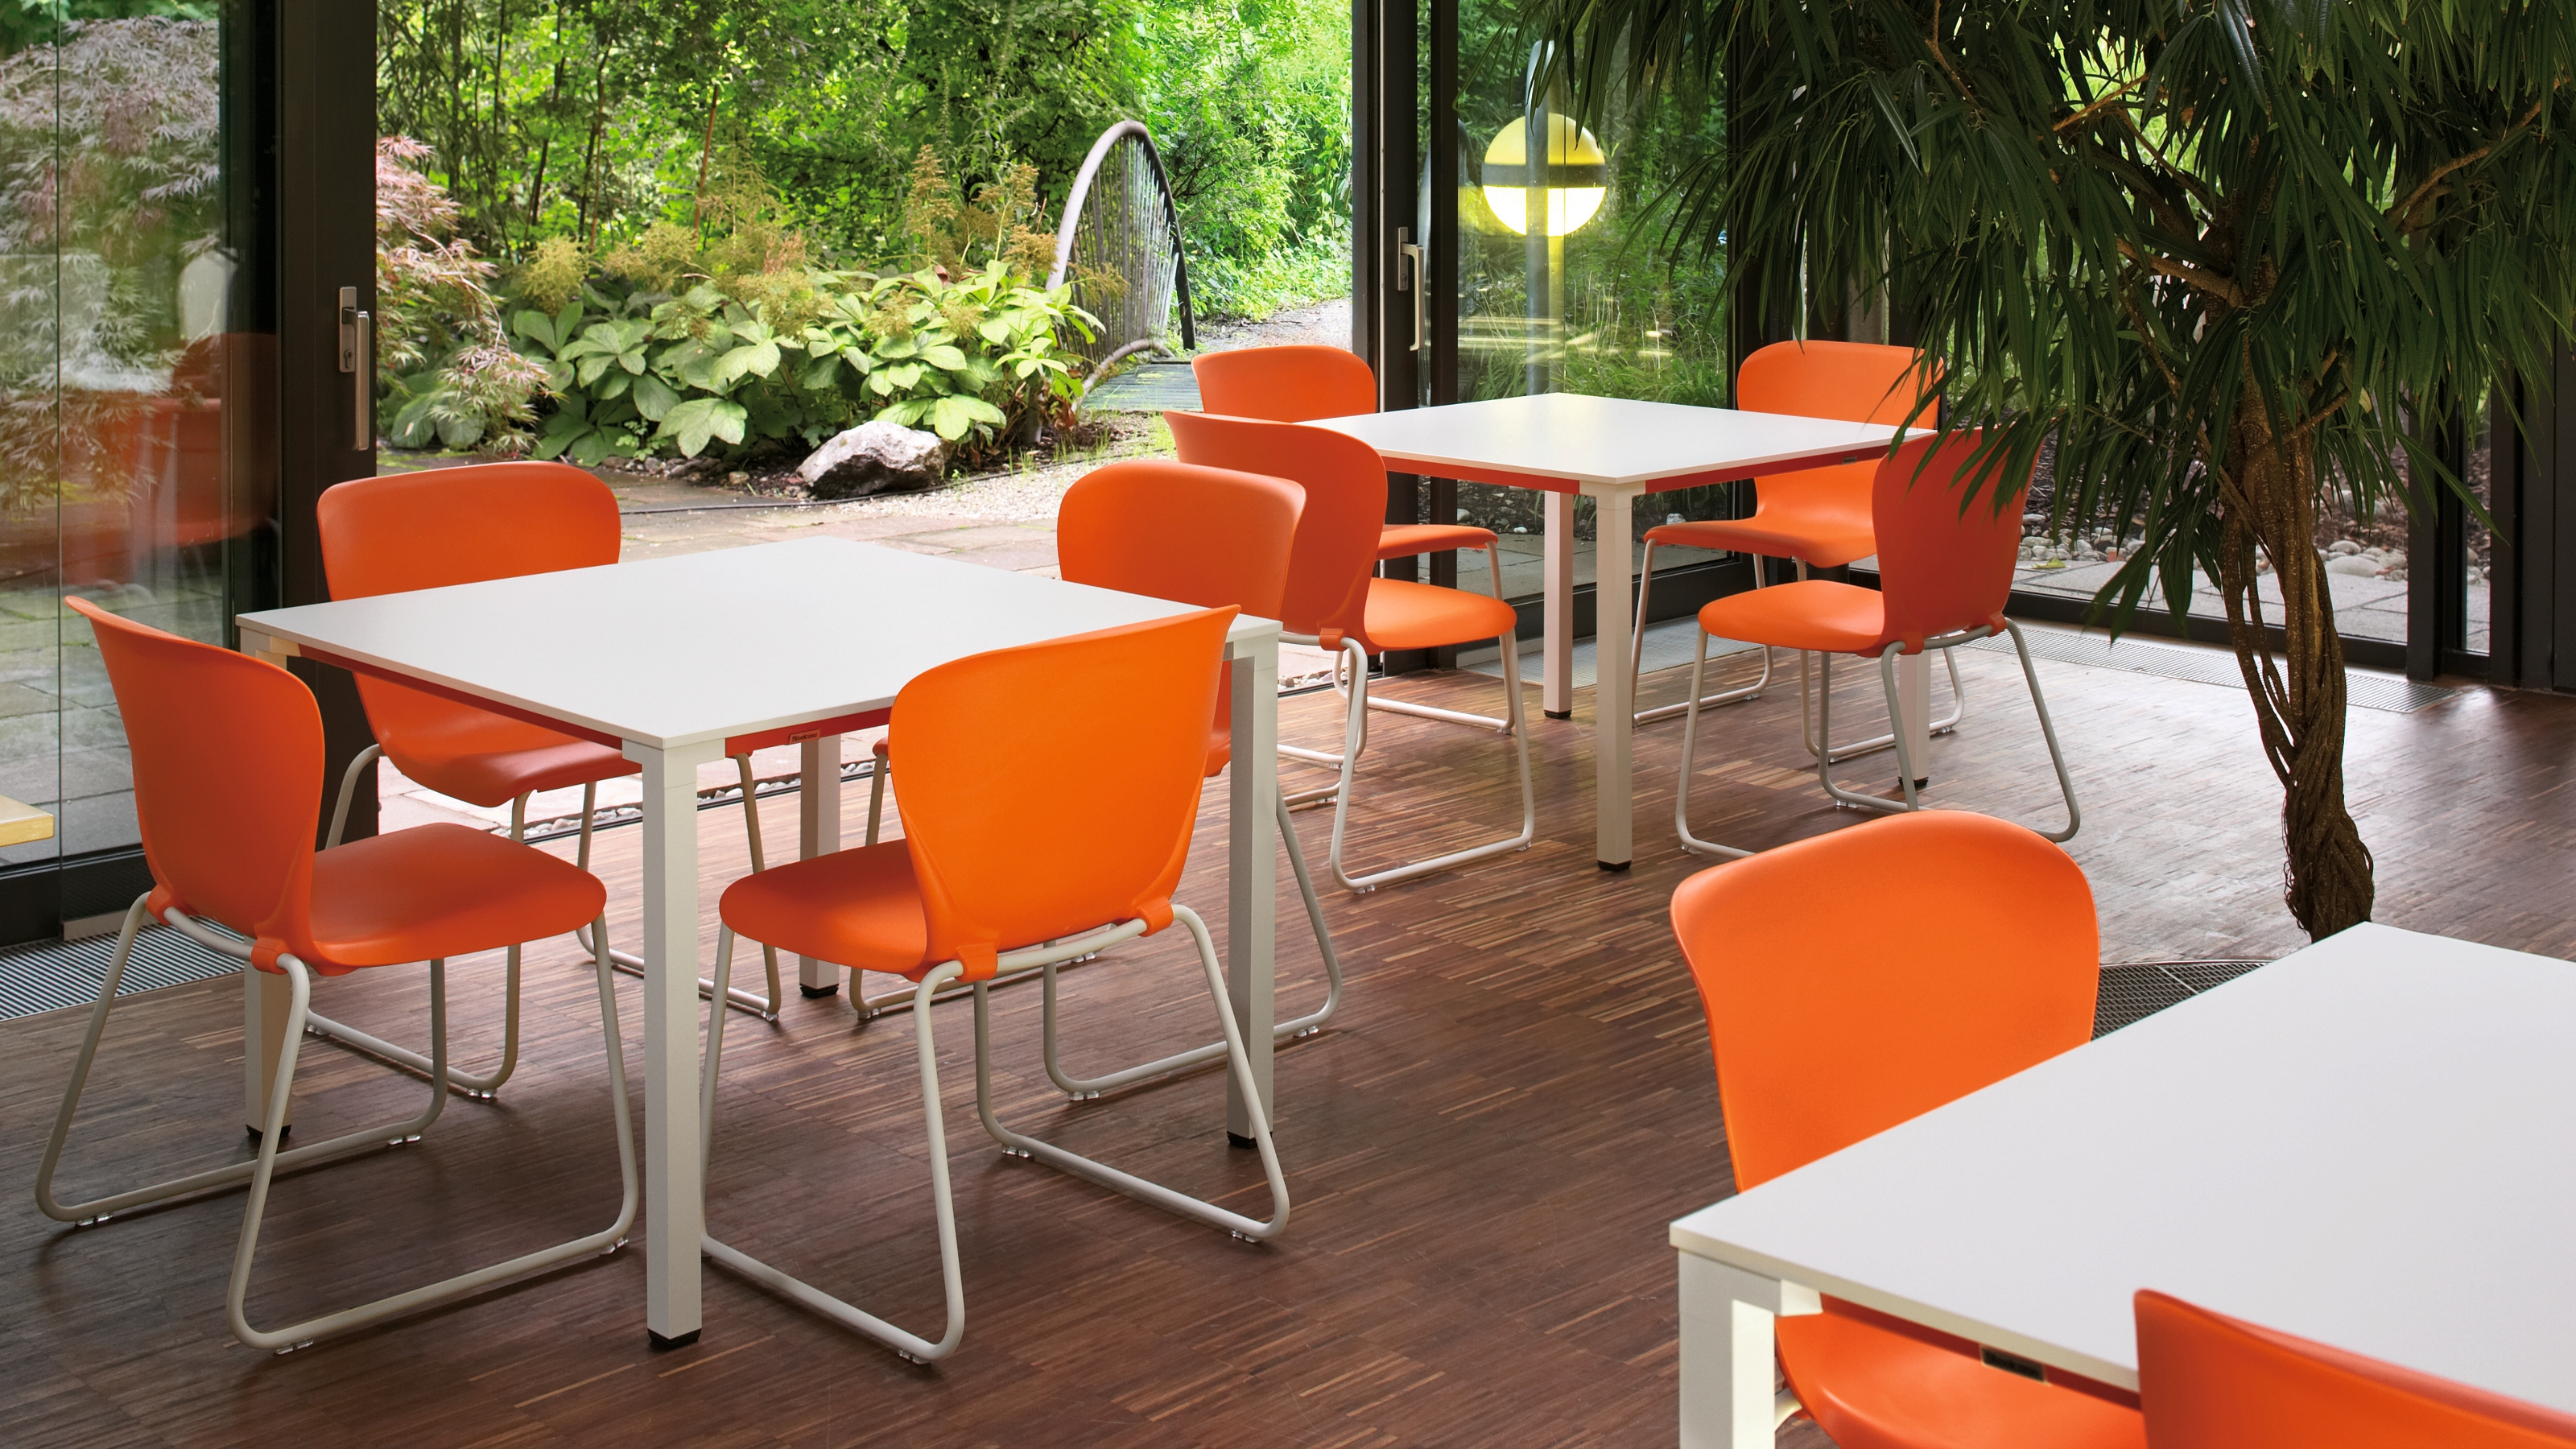 ergonomic chair angle girl table and chairs westside meeting & guest - steelcase